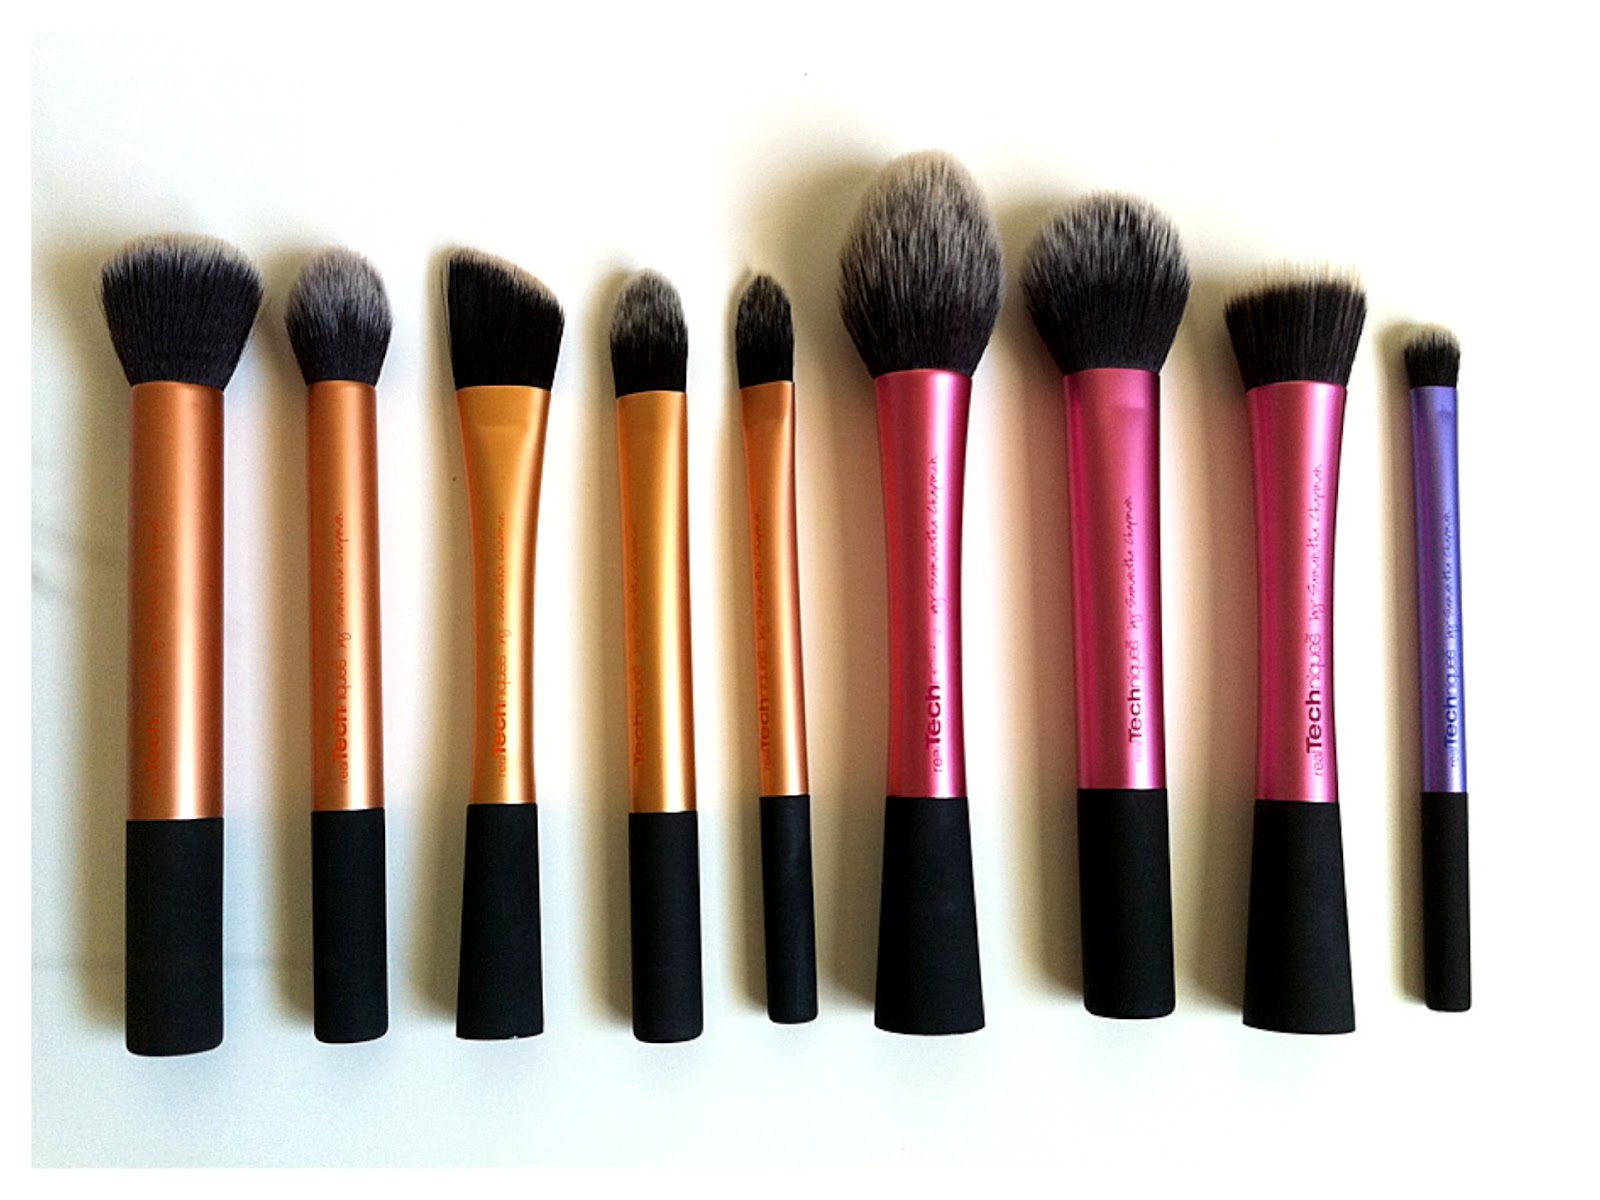 lacefleur Real Techniques by Samantha Chapman Brushes Review